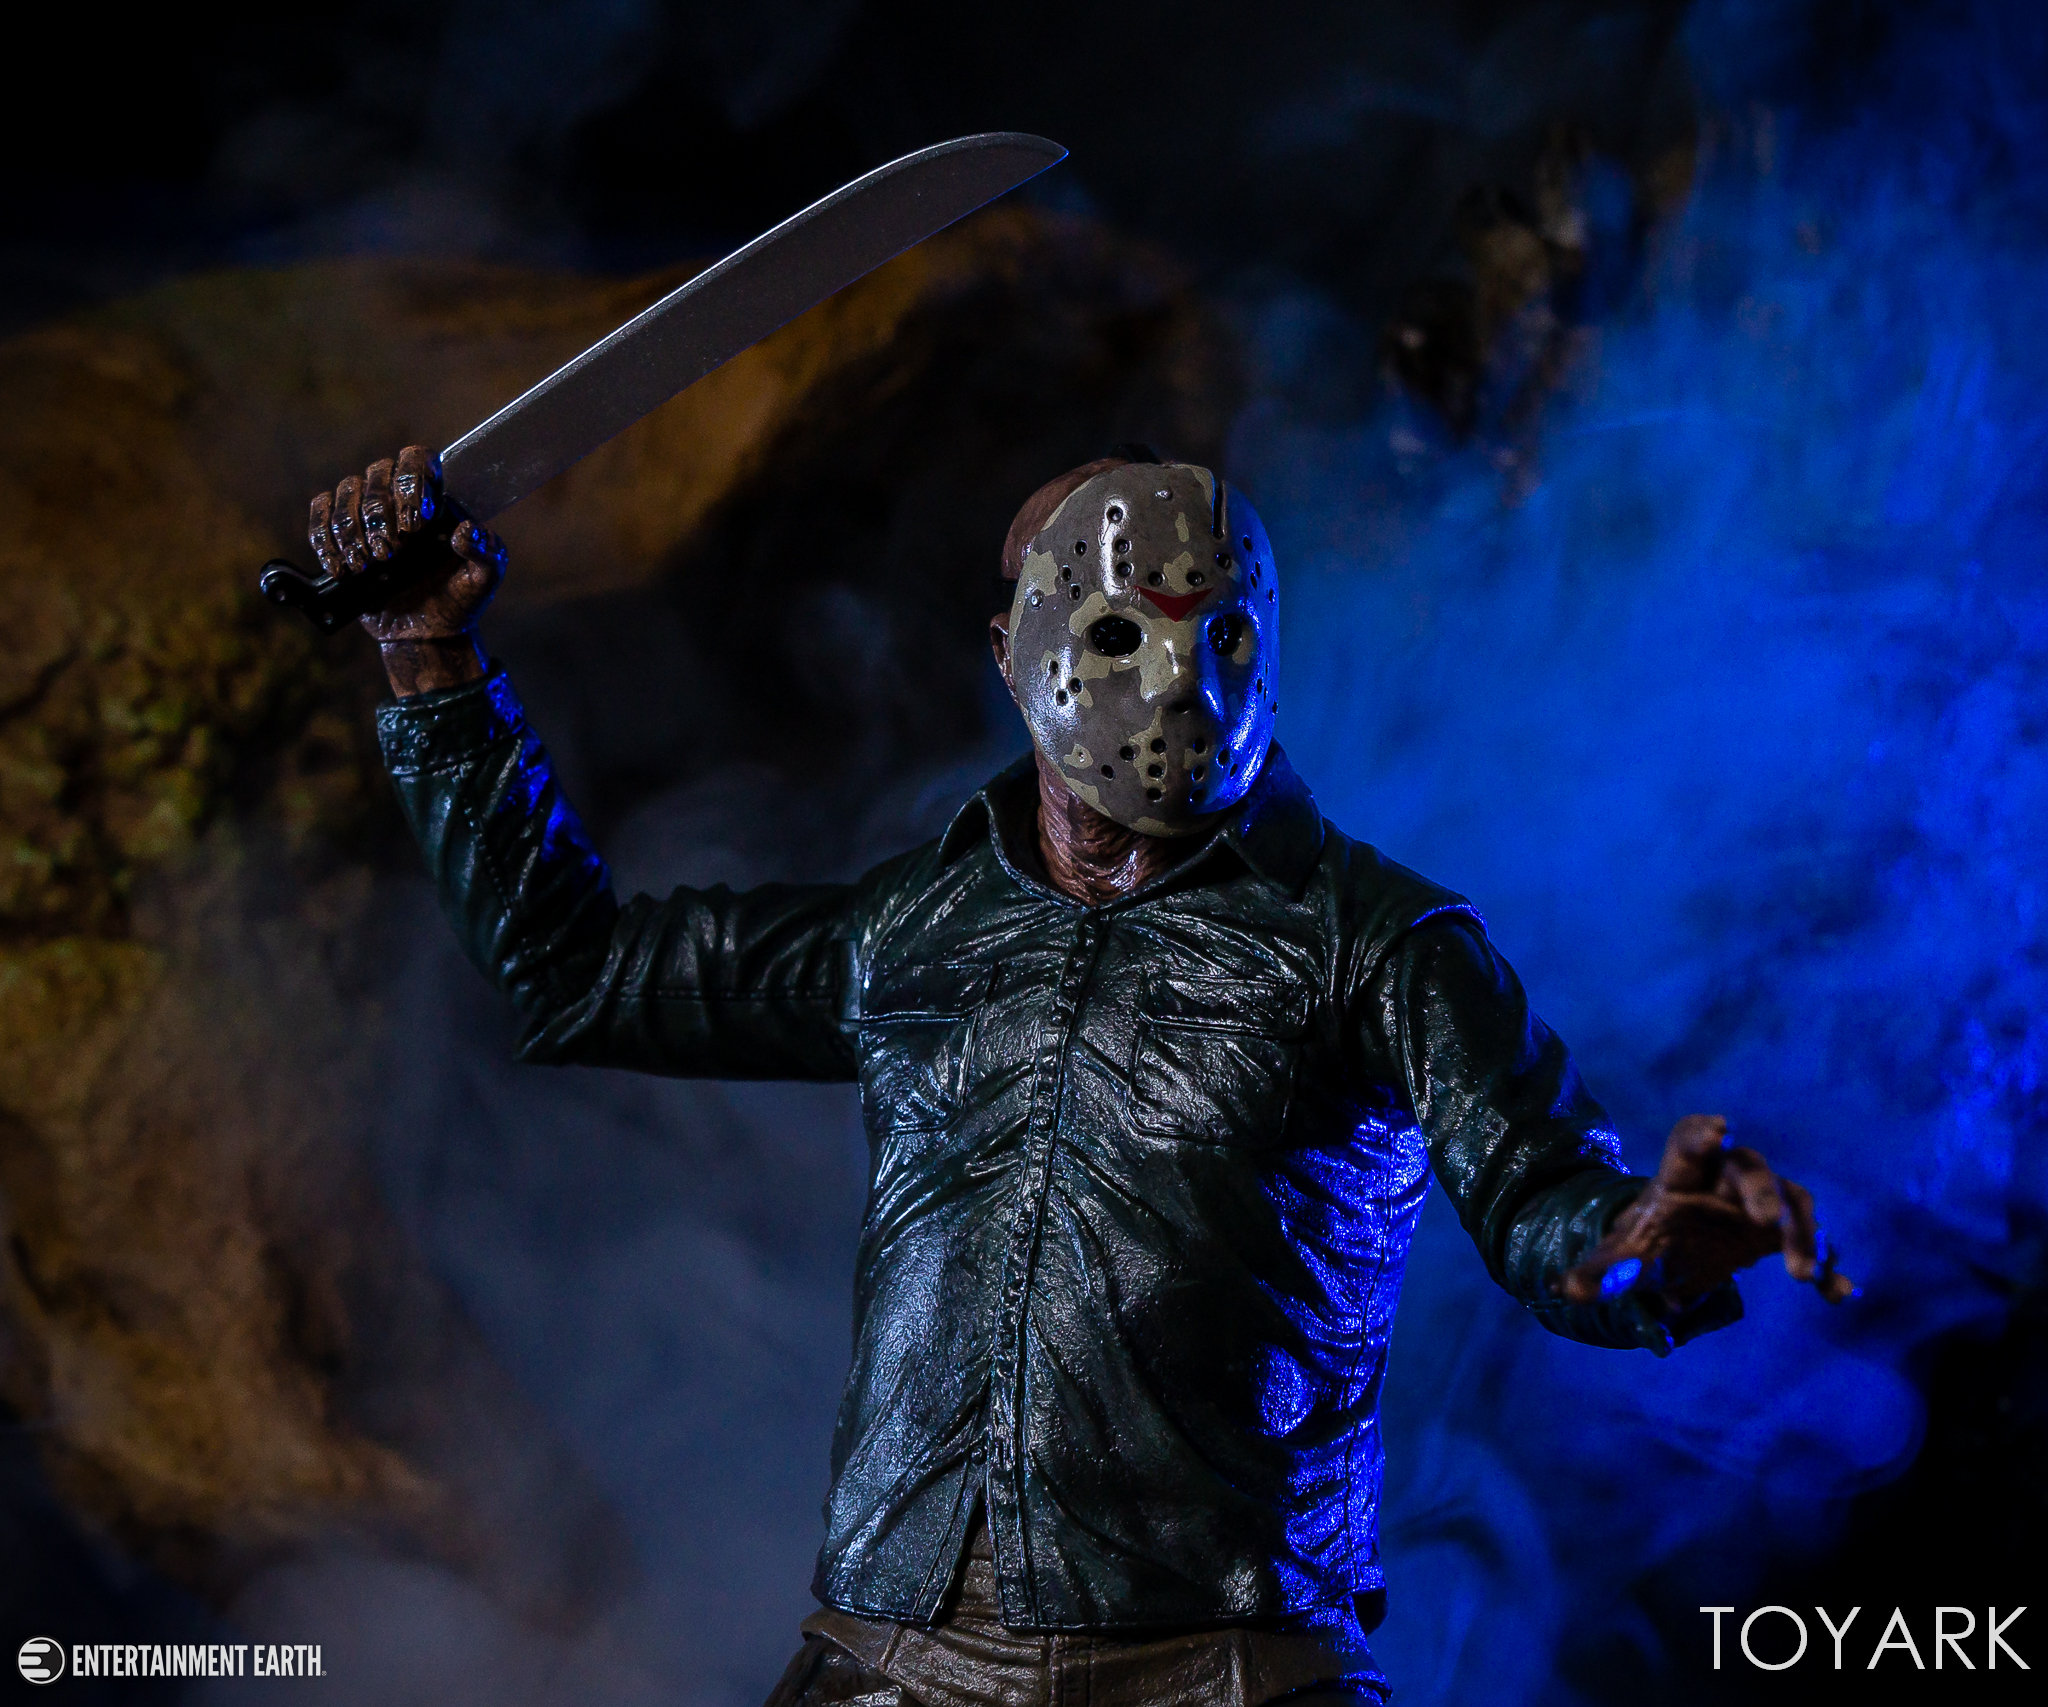 https://news.toyark.com/wp-content/uploads/sites/4/2018/10/NECA-Ultimate-Dream-Jason-031.jpg